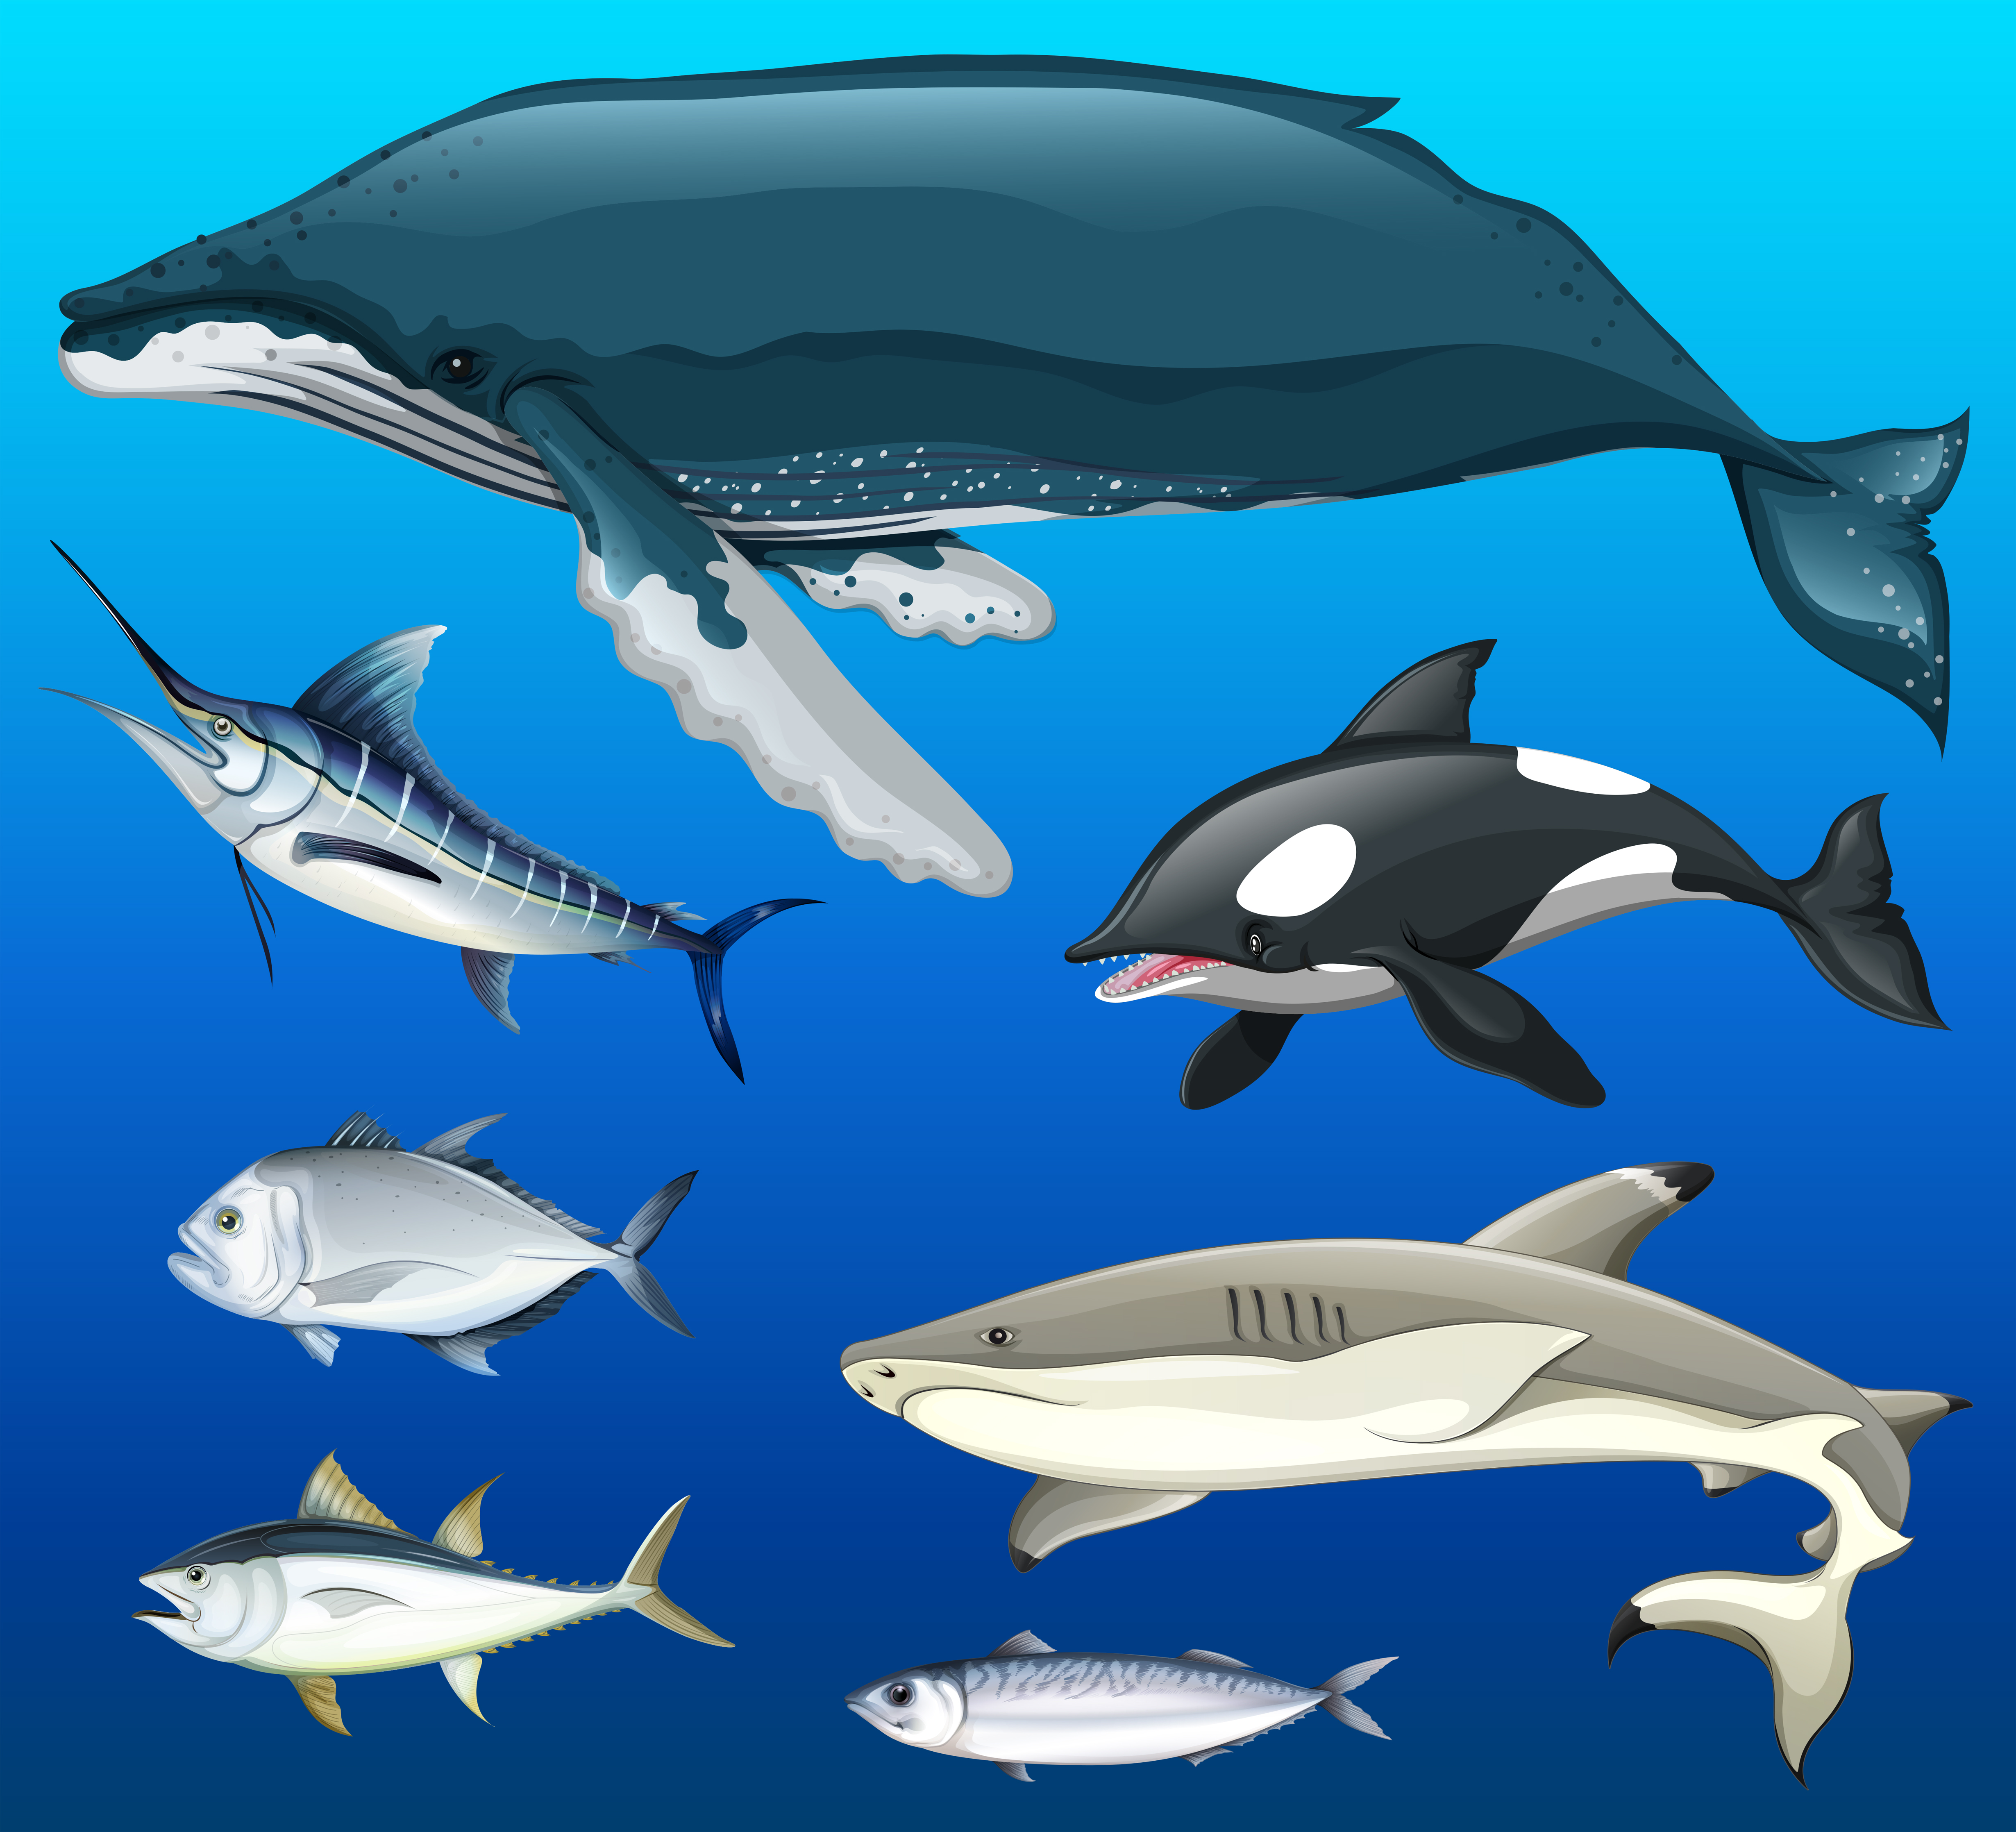 Different Types Of Fish Under The Sea Download Free Vectors Clipart Graphics Vector Art